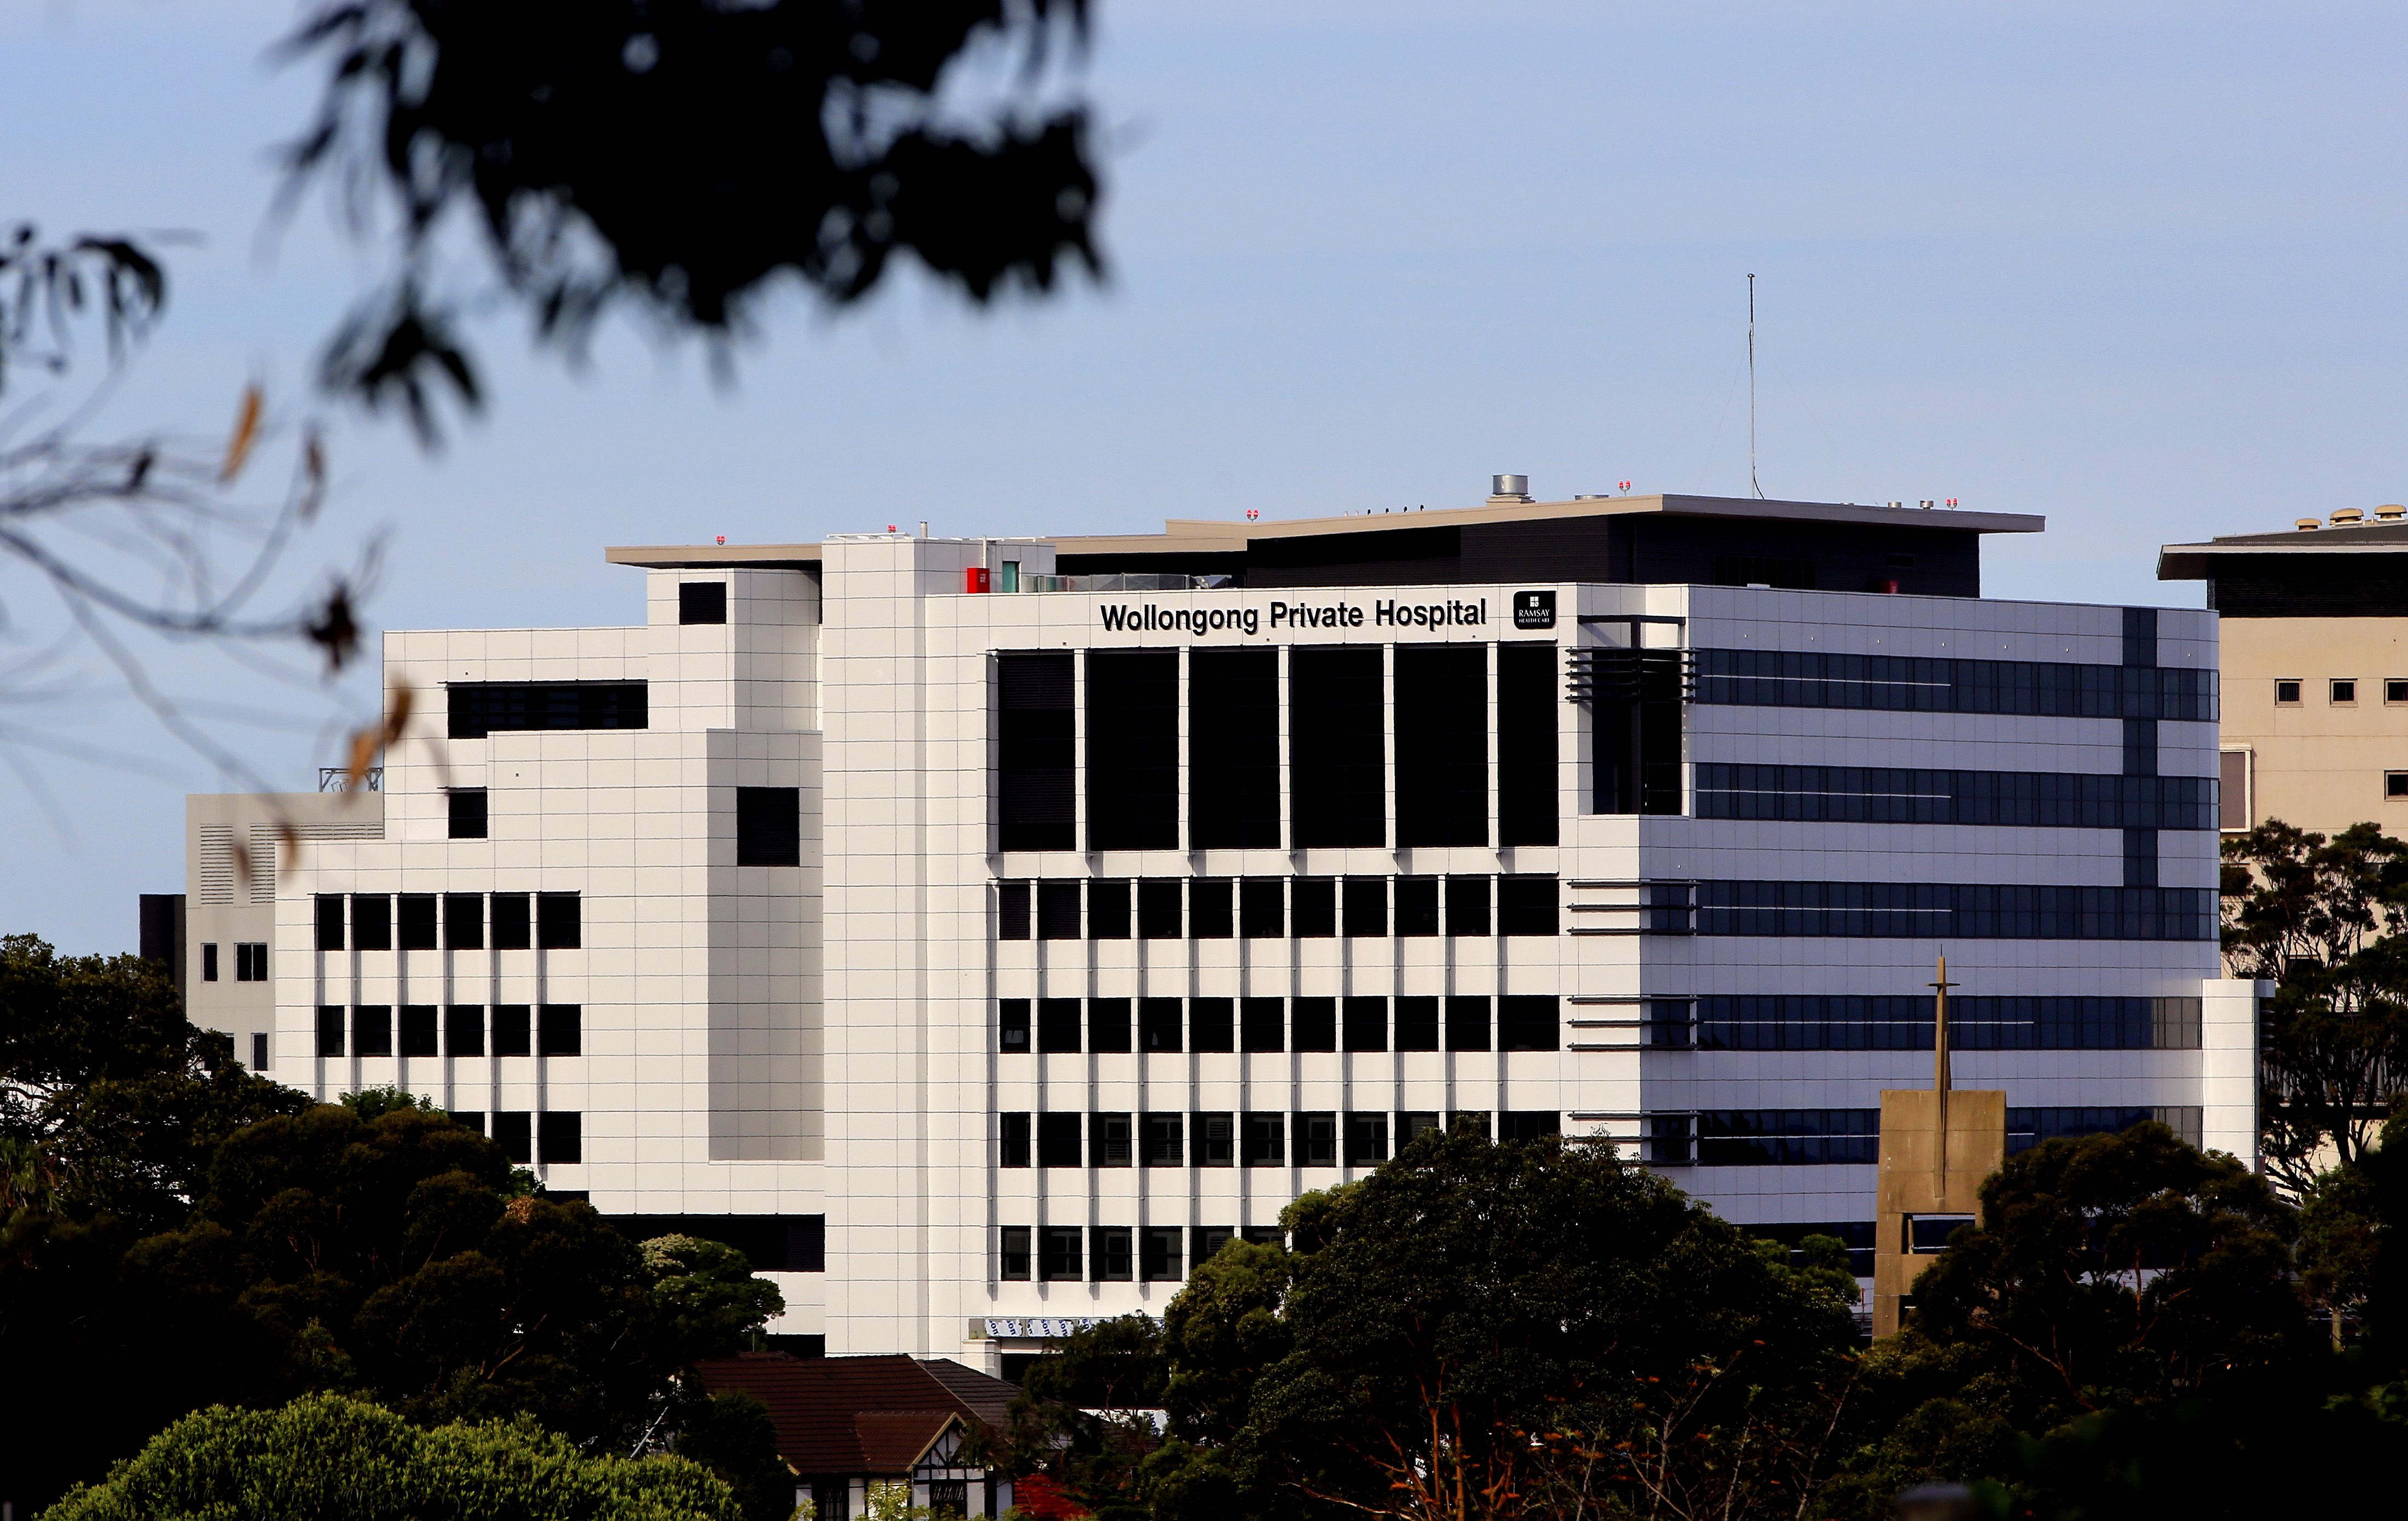 Wollongong Private Hospital a breath of fresh air for public